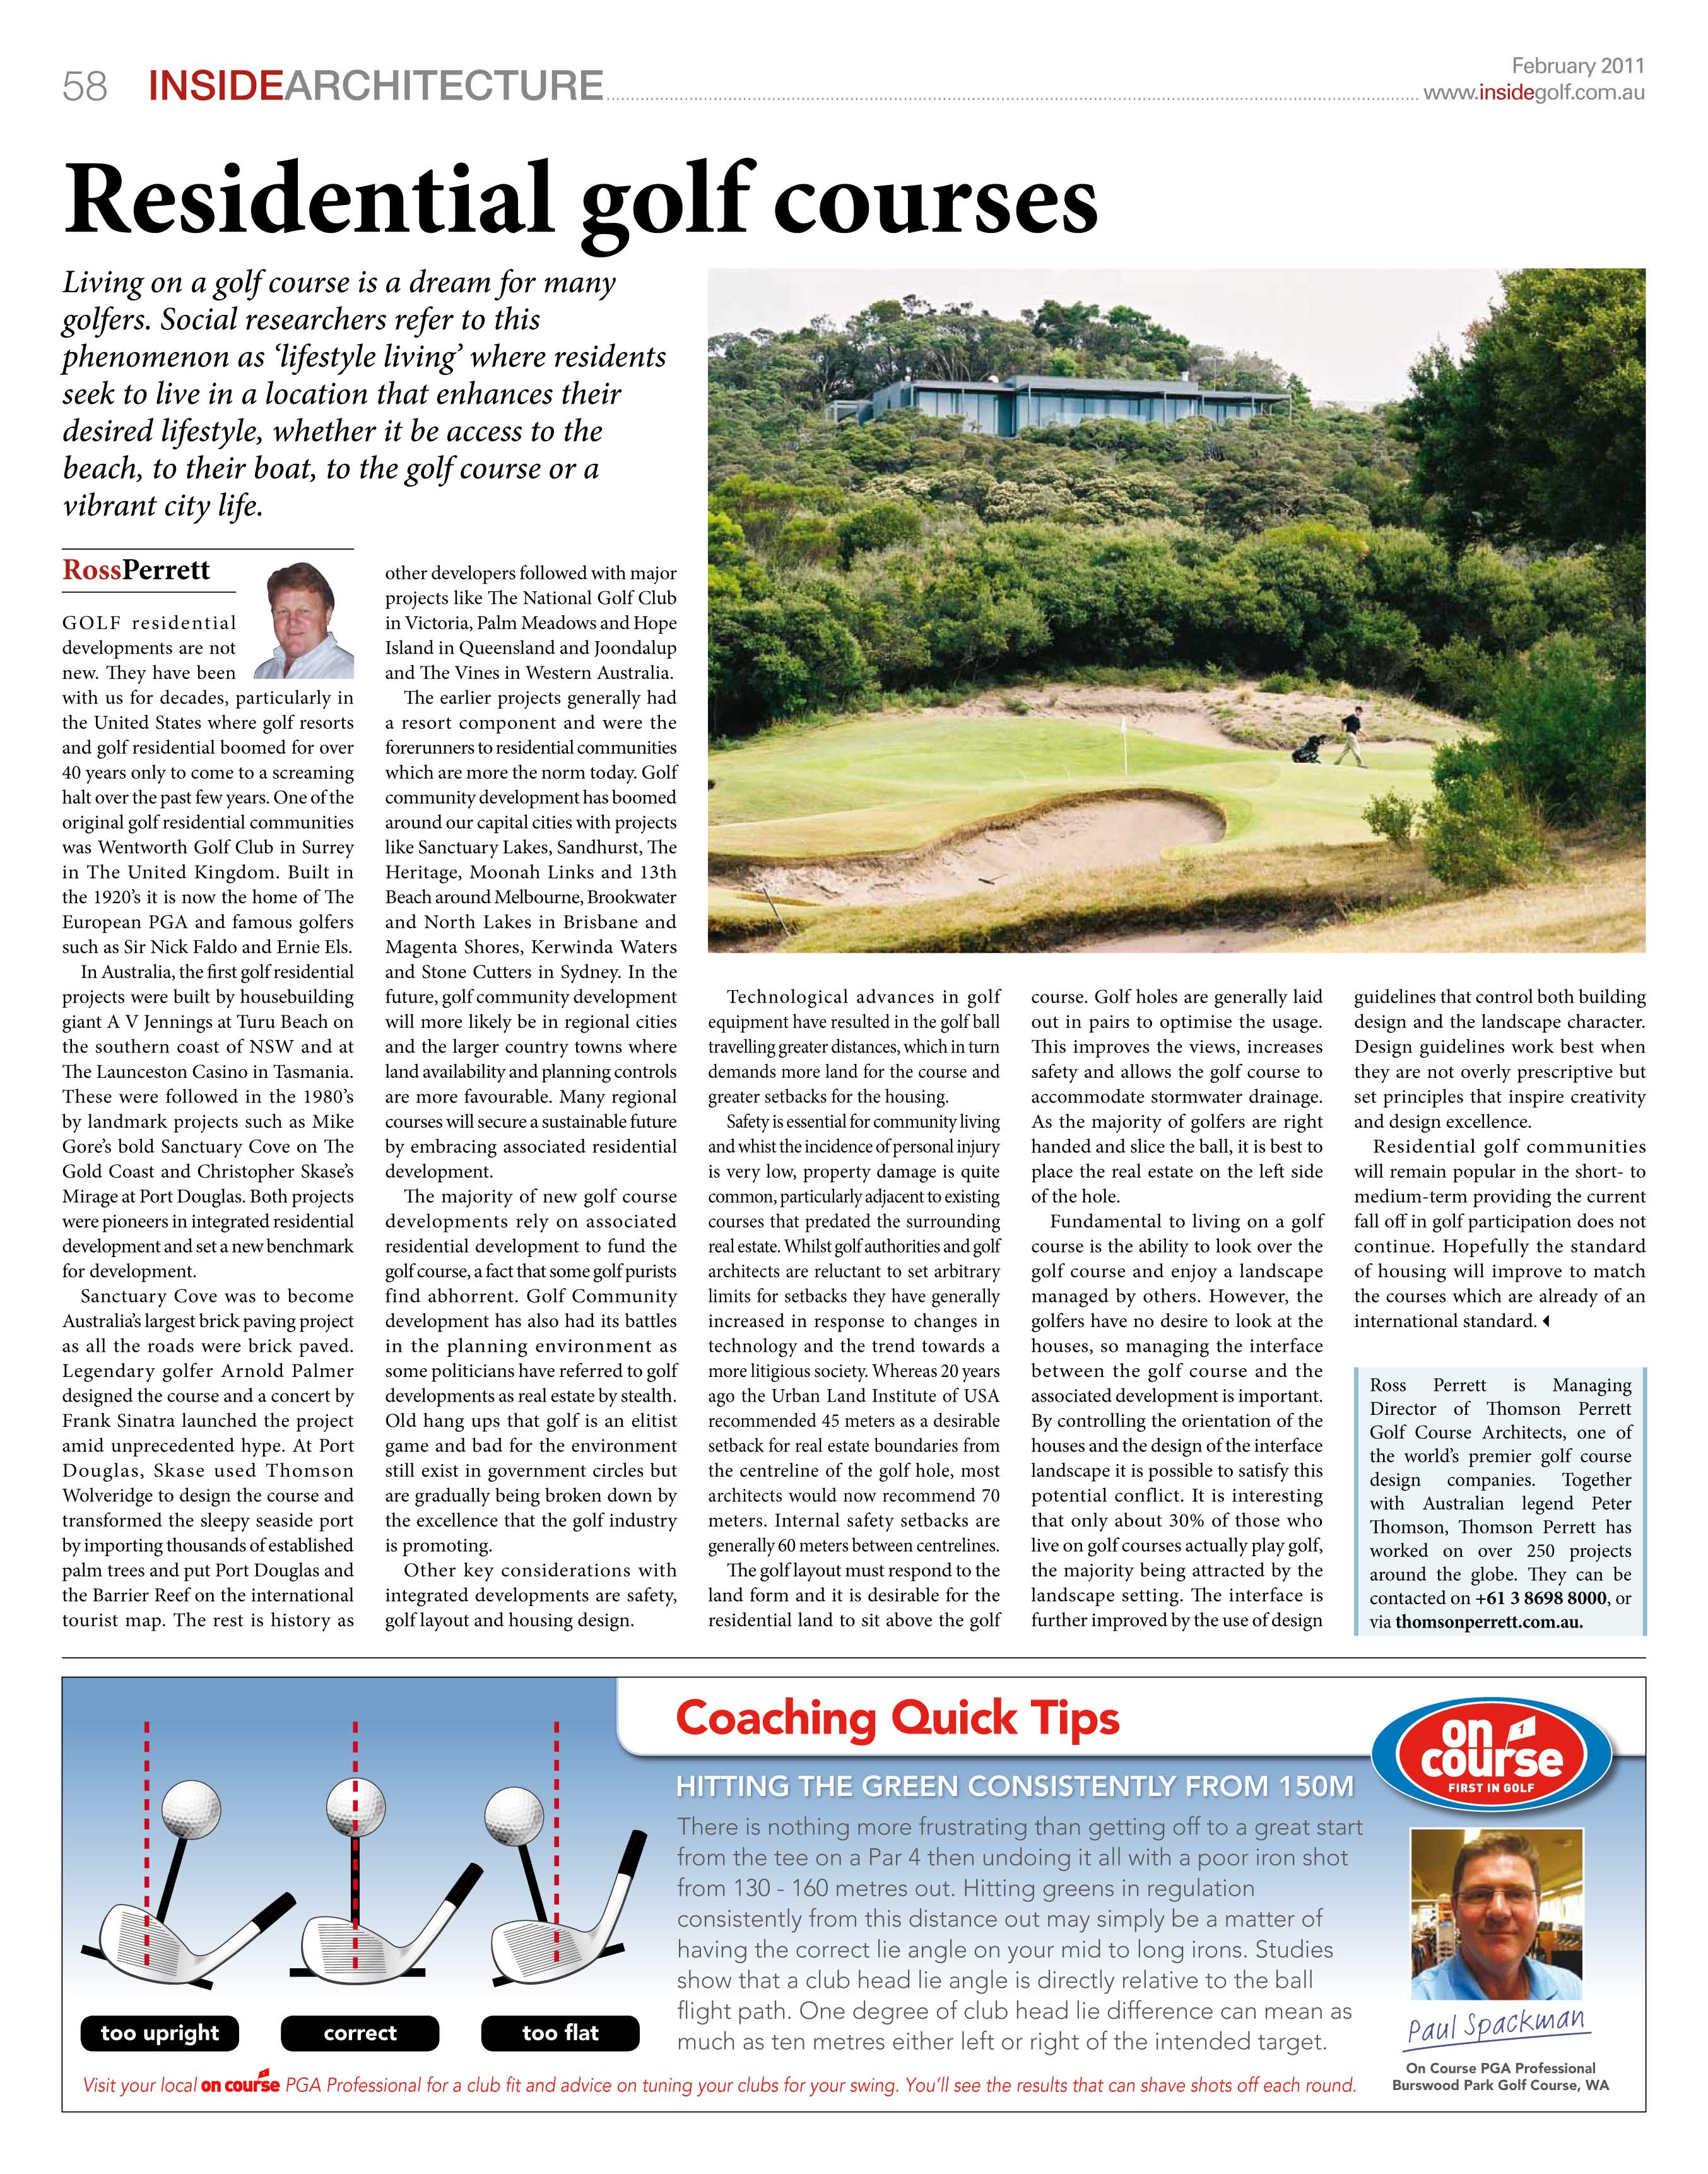 Residential Golf Courses – written by Ross Perrett, Febuary 2011